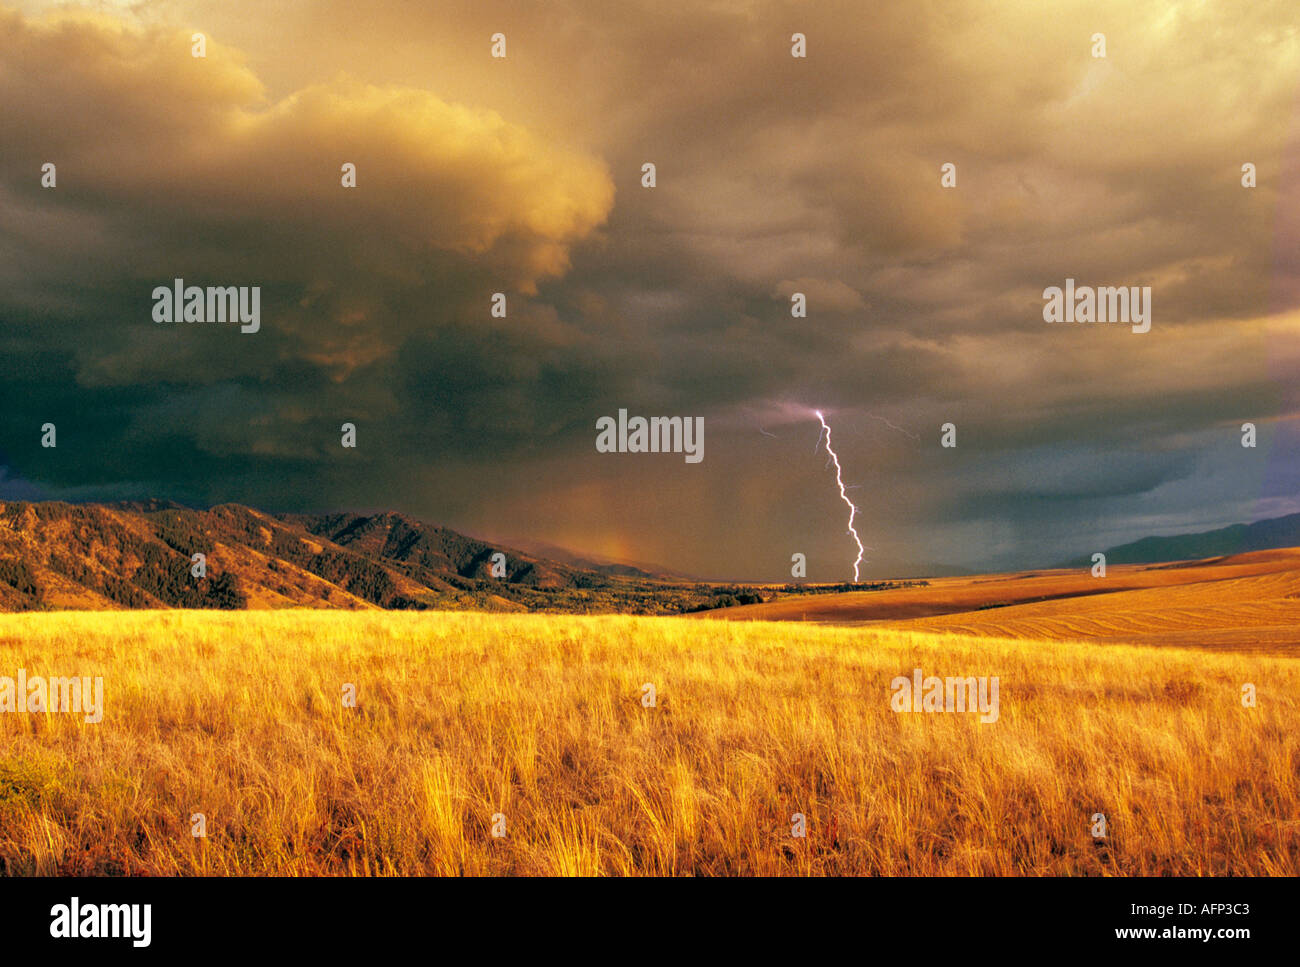 Steve Bly Stock Photos & Images, Steve Bly Stock Photography - Alamy